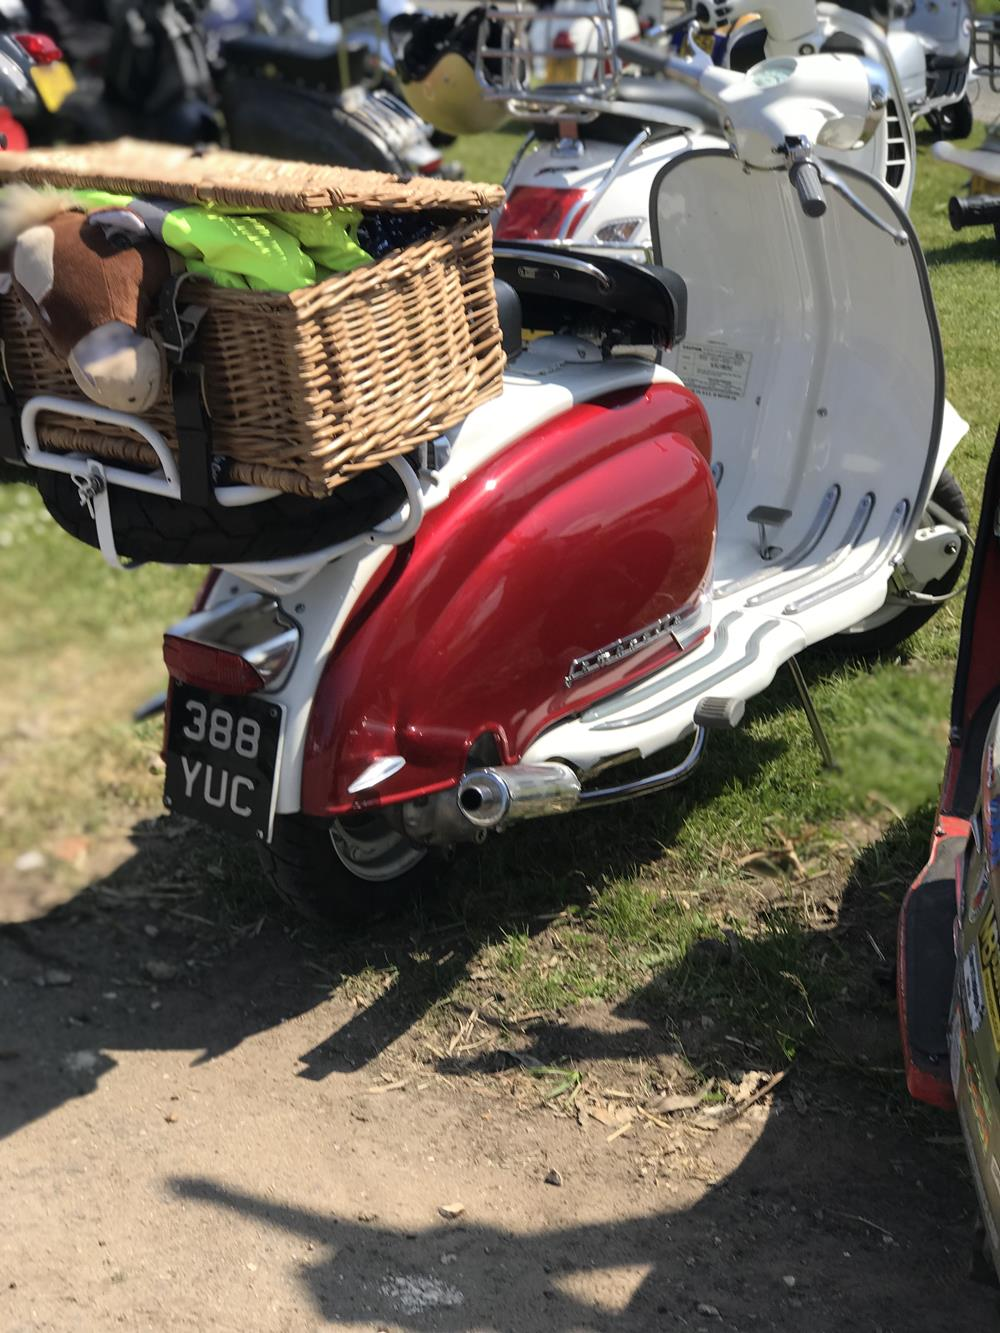 White Lambretta scooter with red side panels and picnic hamper basket on the back